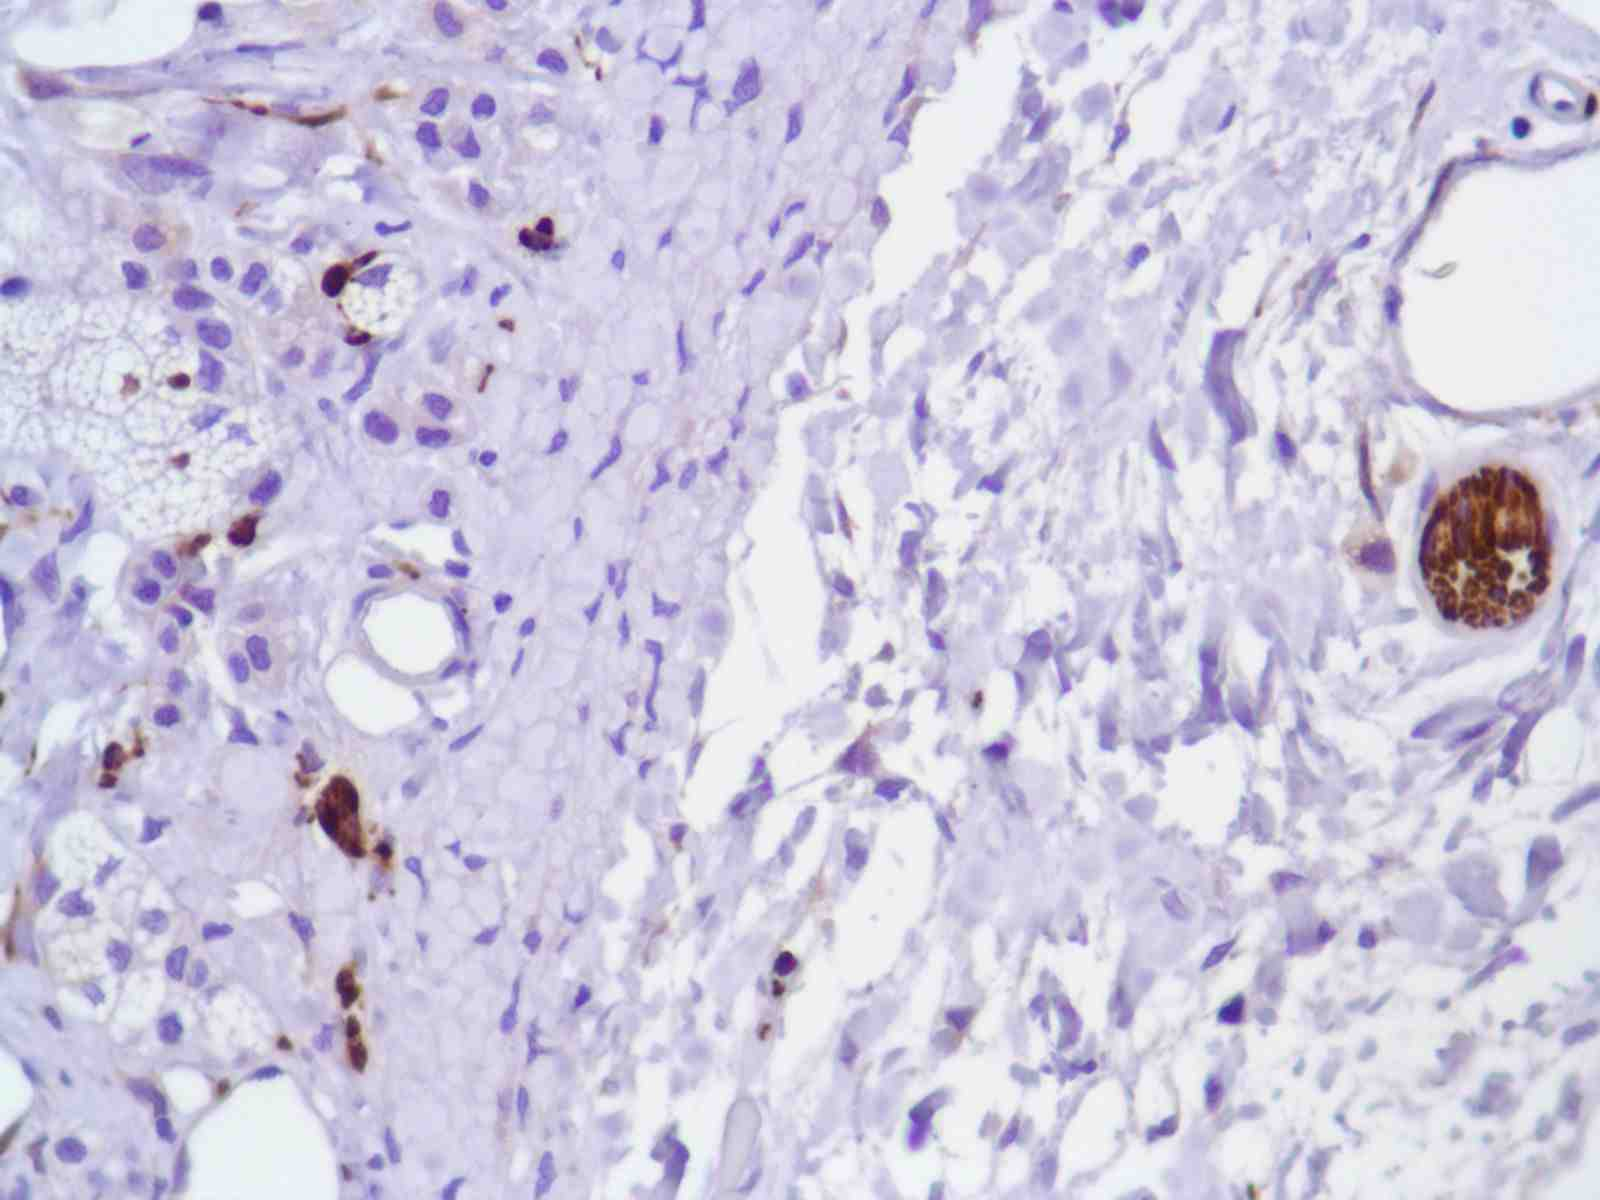 Human Bladder stained with anti-Tau antibody